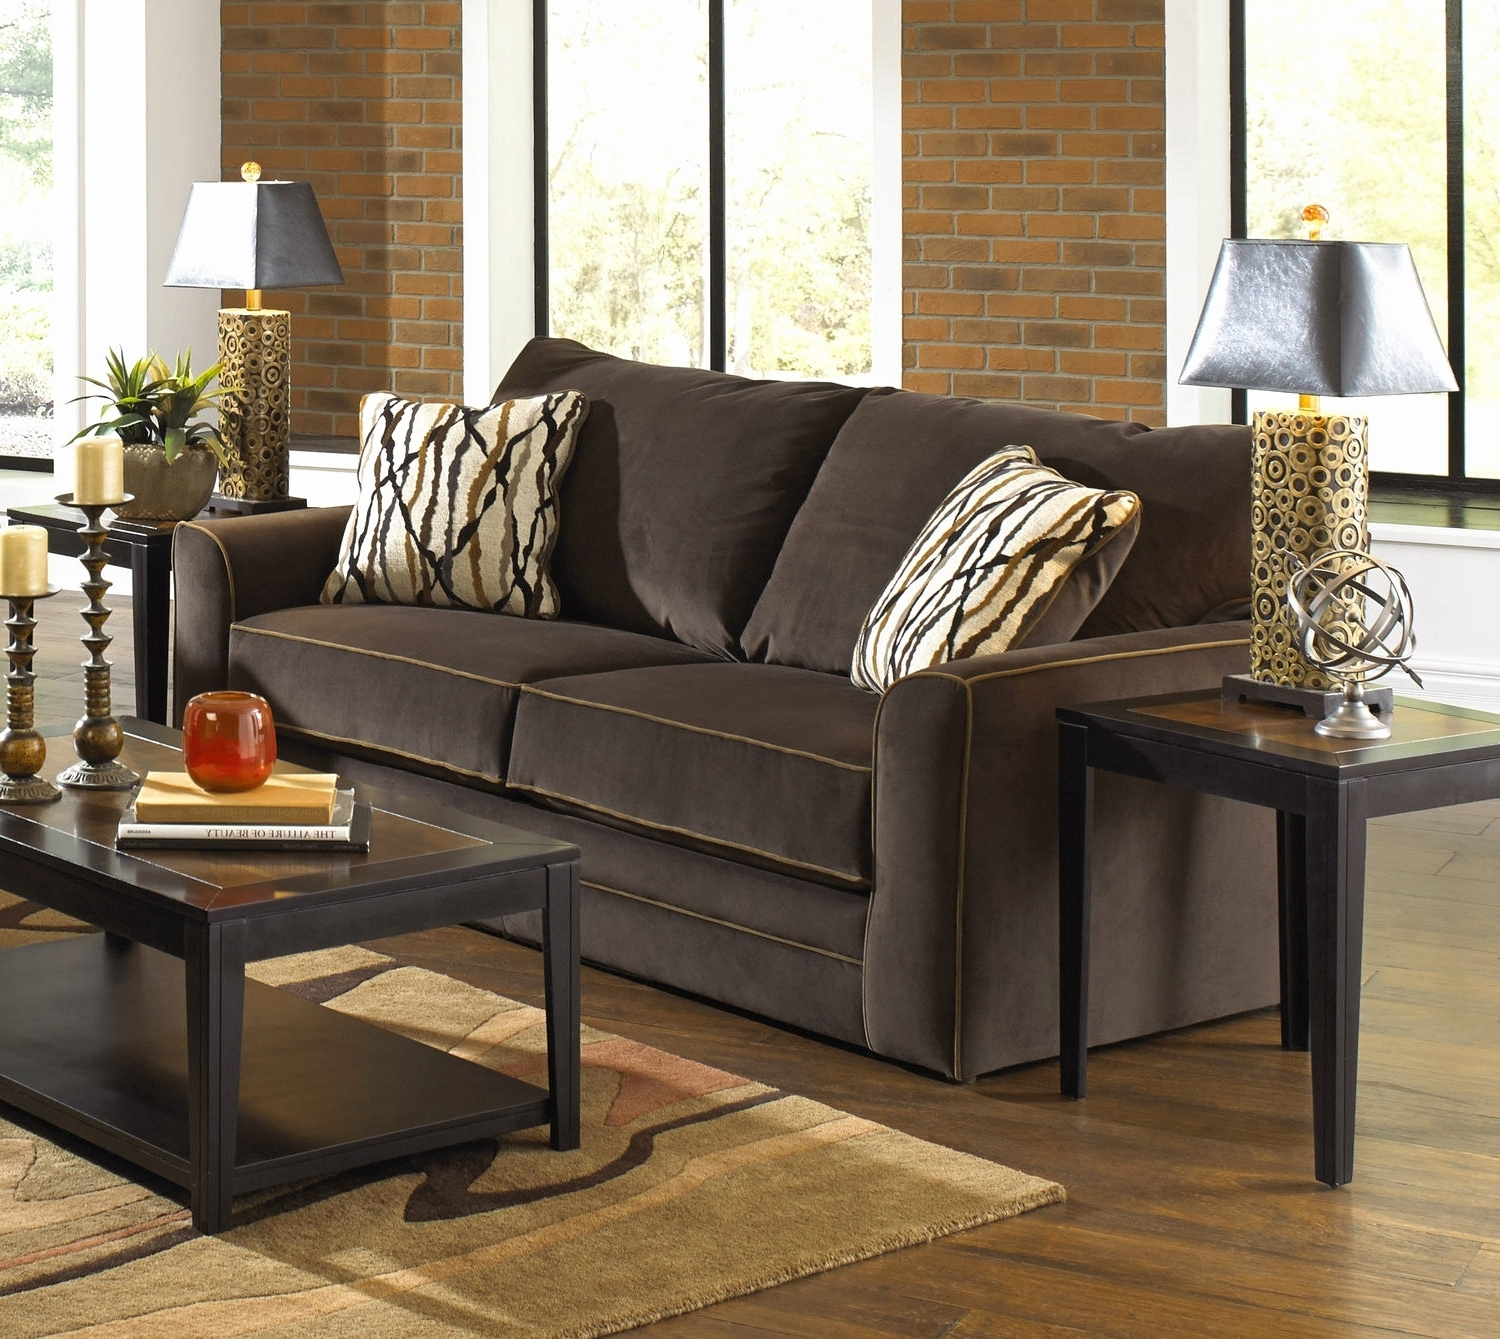 Favorite 30 Beautiful Gallery Of Red Microfiber Couch And Loveseat 2018 In Dock 86 Sectional Sofas (View 12 of 15)